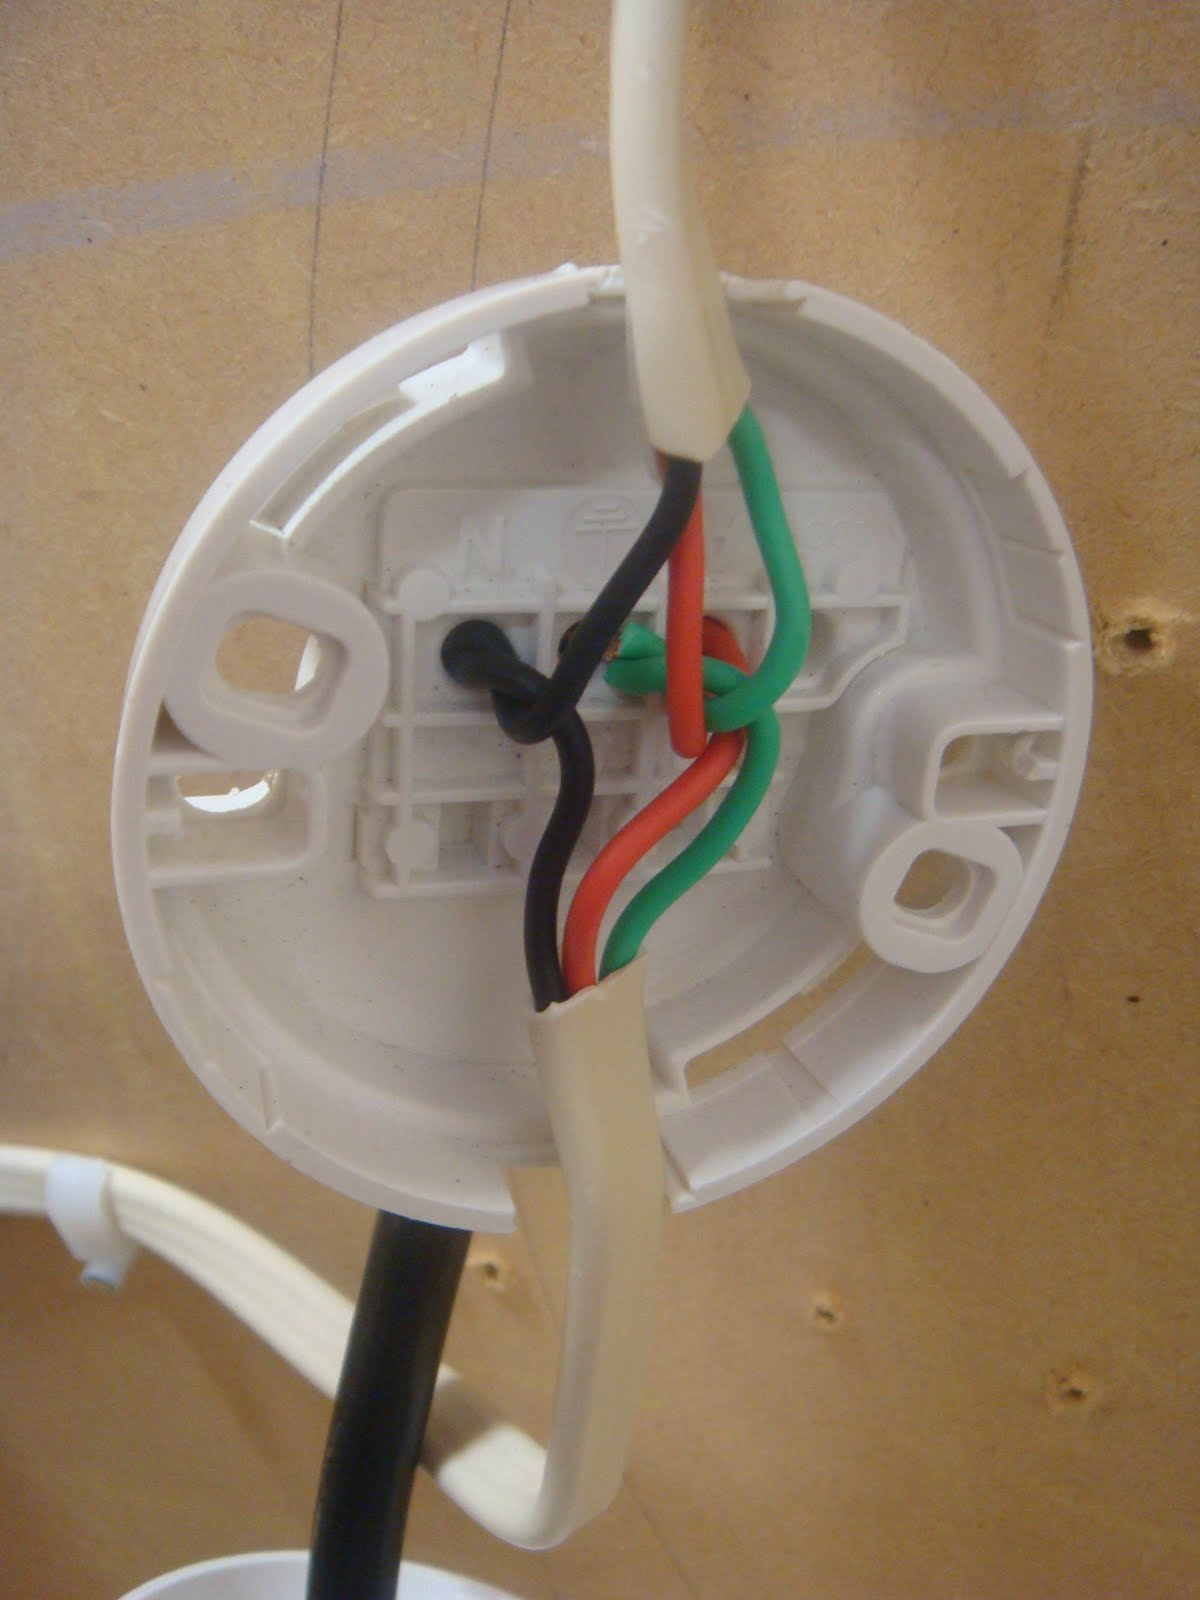 Light Switch Wiring Diagram Australia Hpm For Downlights With Transformers Zhiheng Luo 39s World June 2010